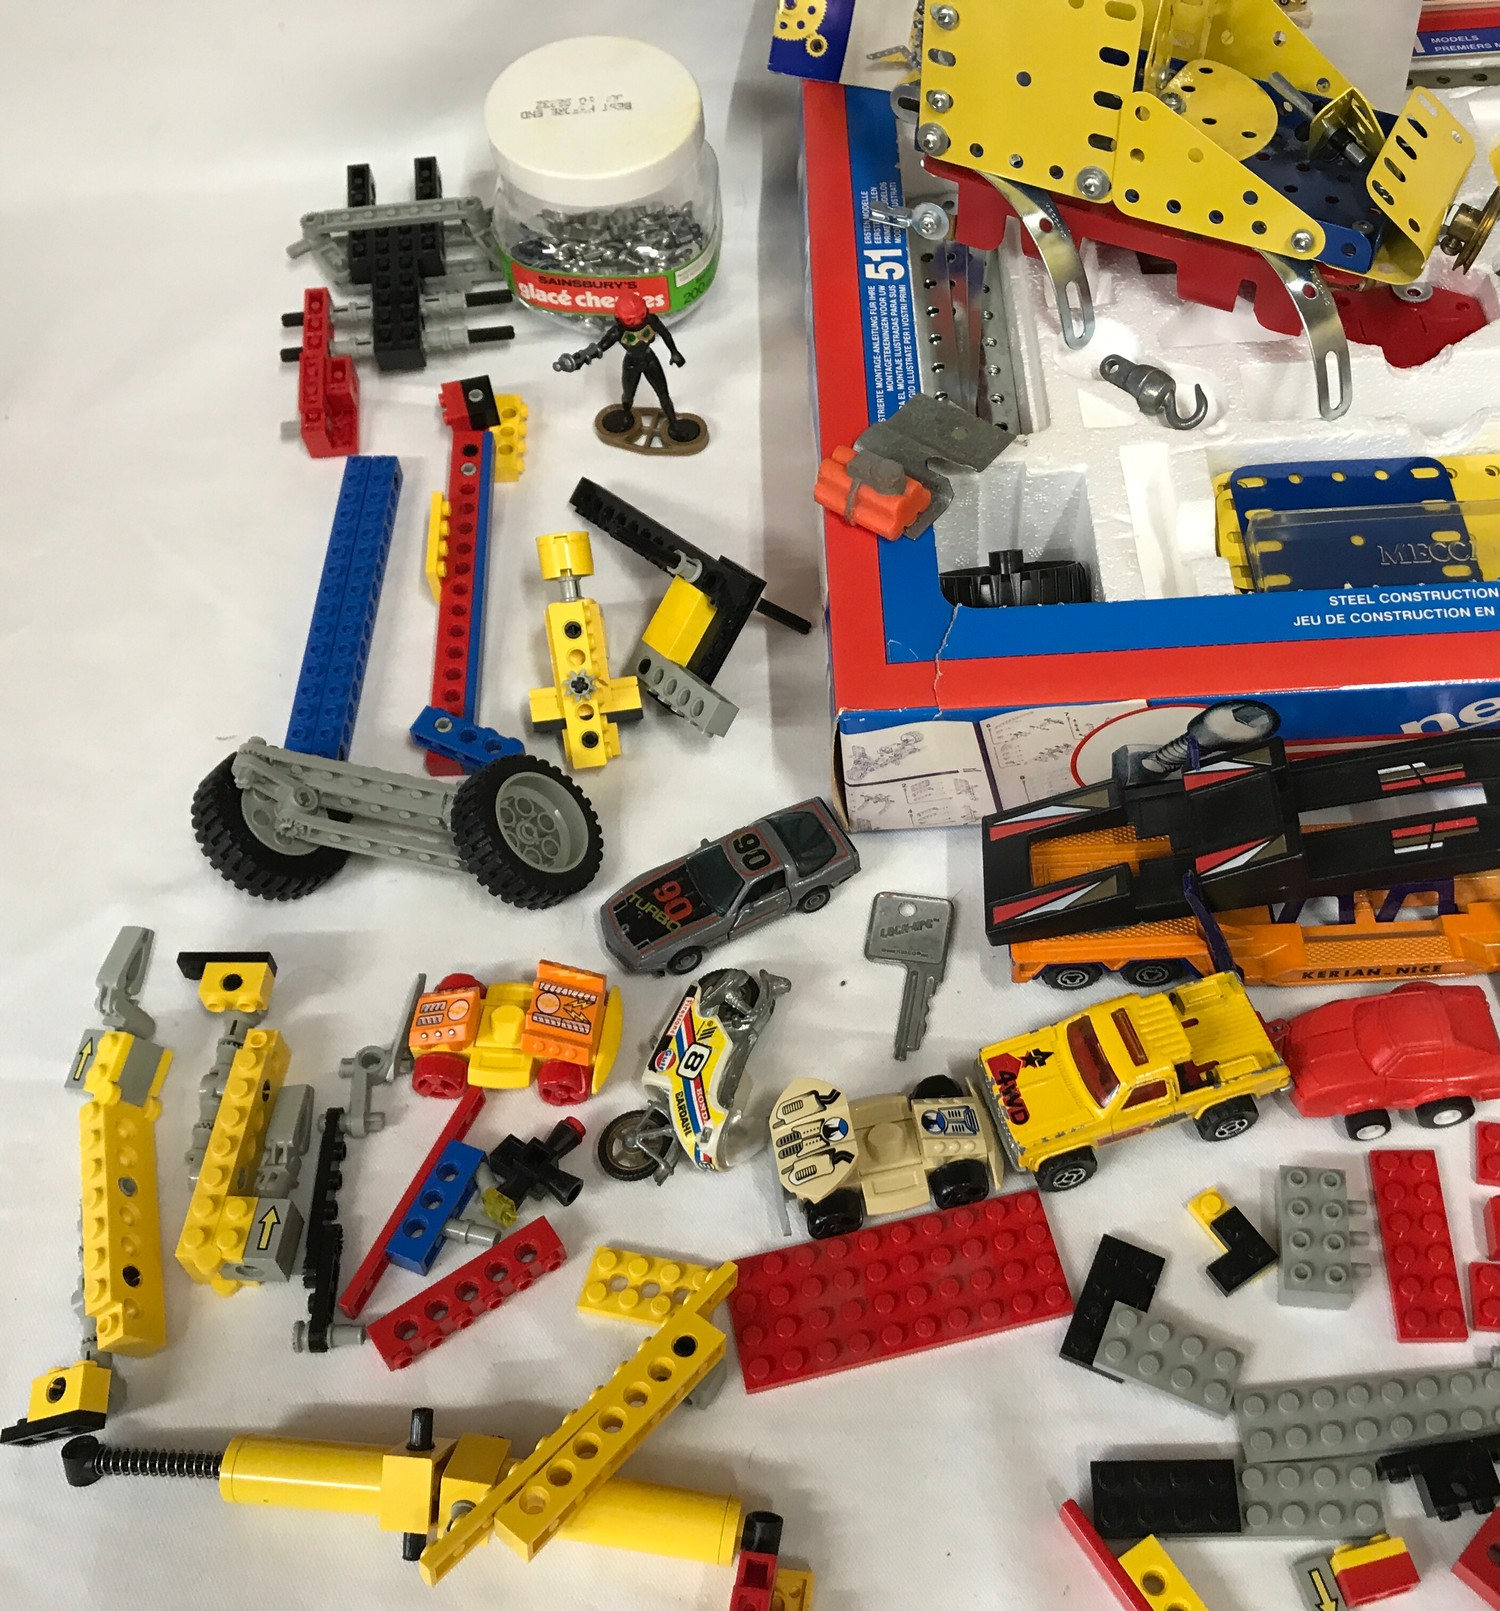 Meccano set number 4, boxed, assorted Lego pieces and plastic vehicles, playworn.Condition - Image 4 of 4